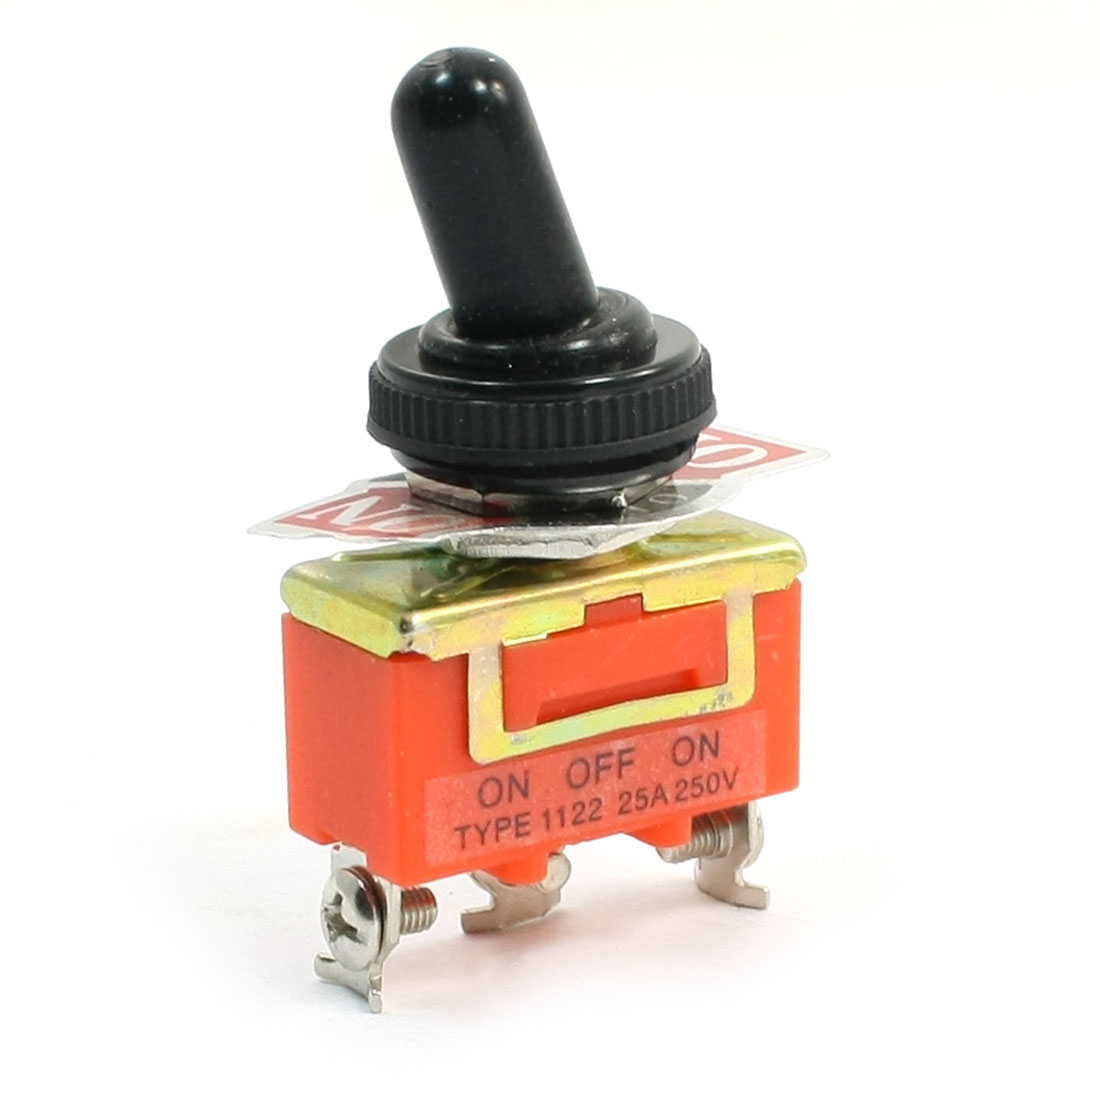 250V 25Amp SPDT Latching Rocker Type 3 Position Toggle Switch w Cover